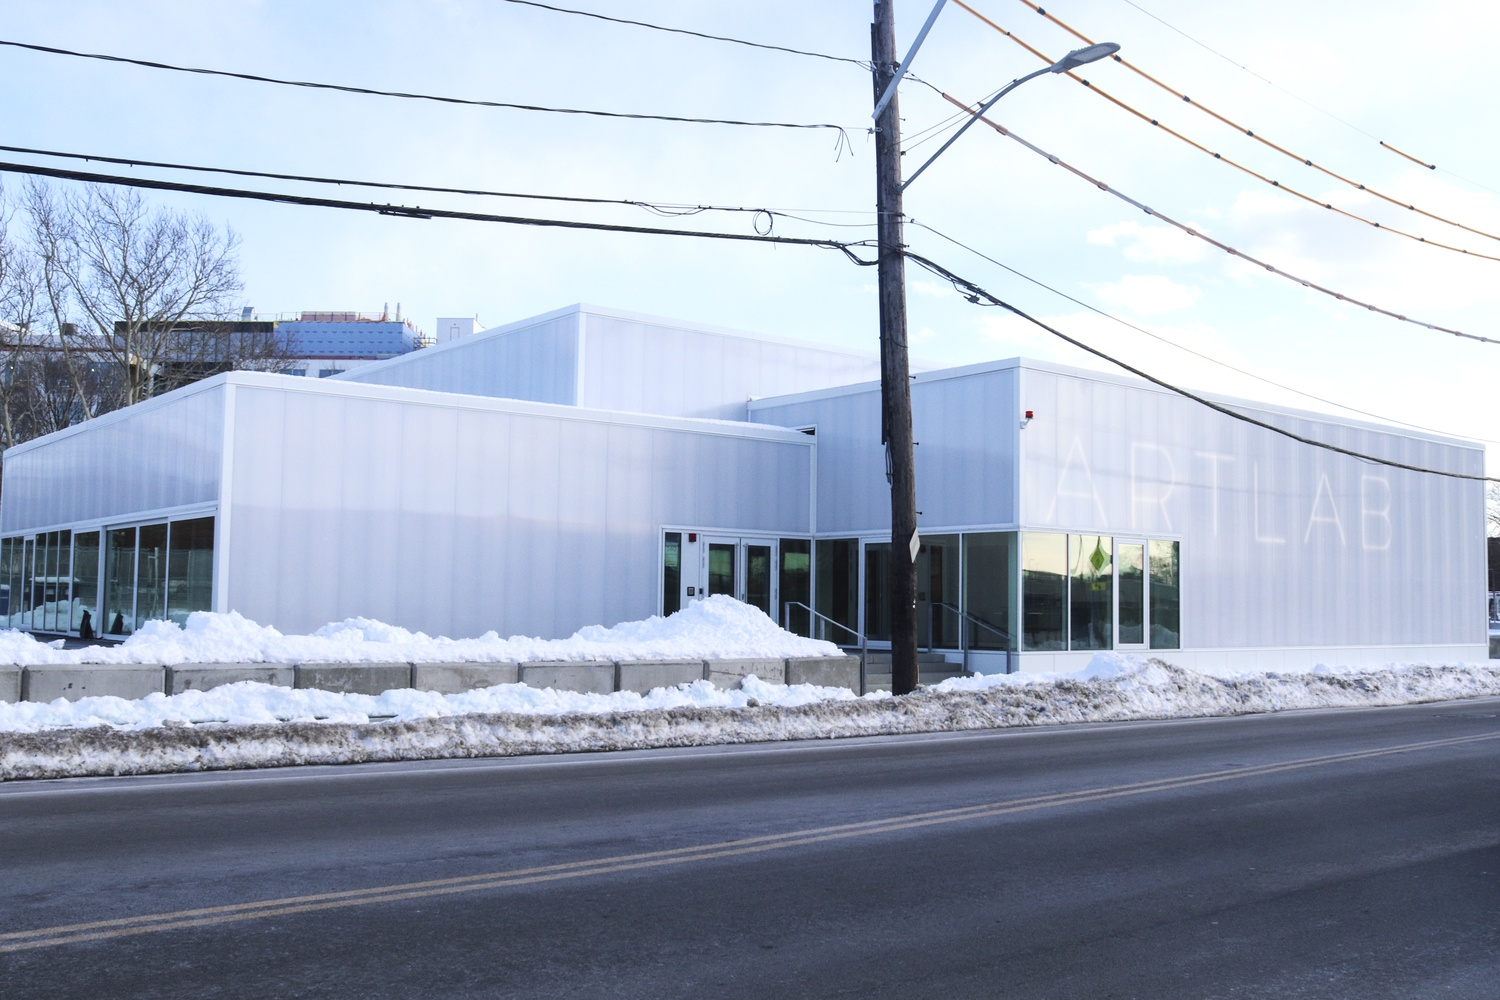 The ArtLab, a newly created center for arts innovation, is located on North Harvard St. in Allston.